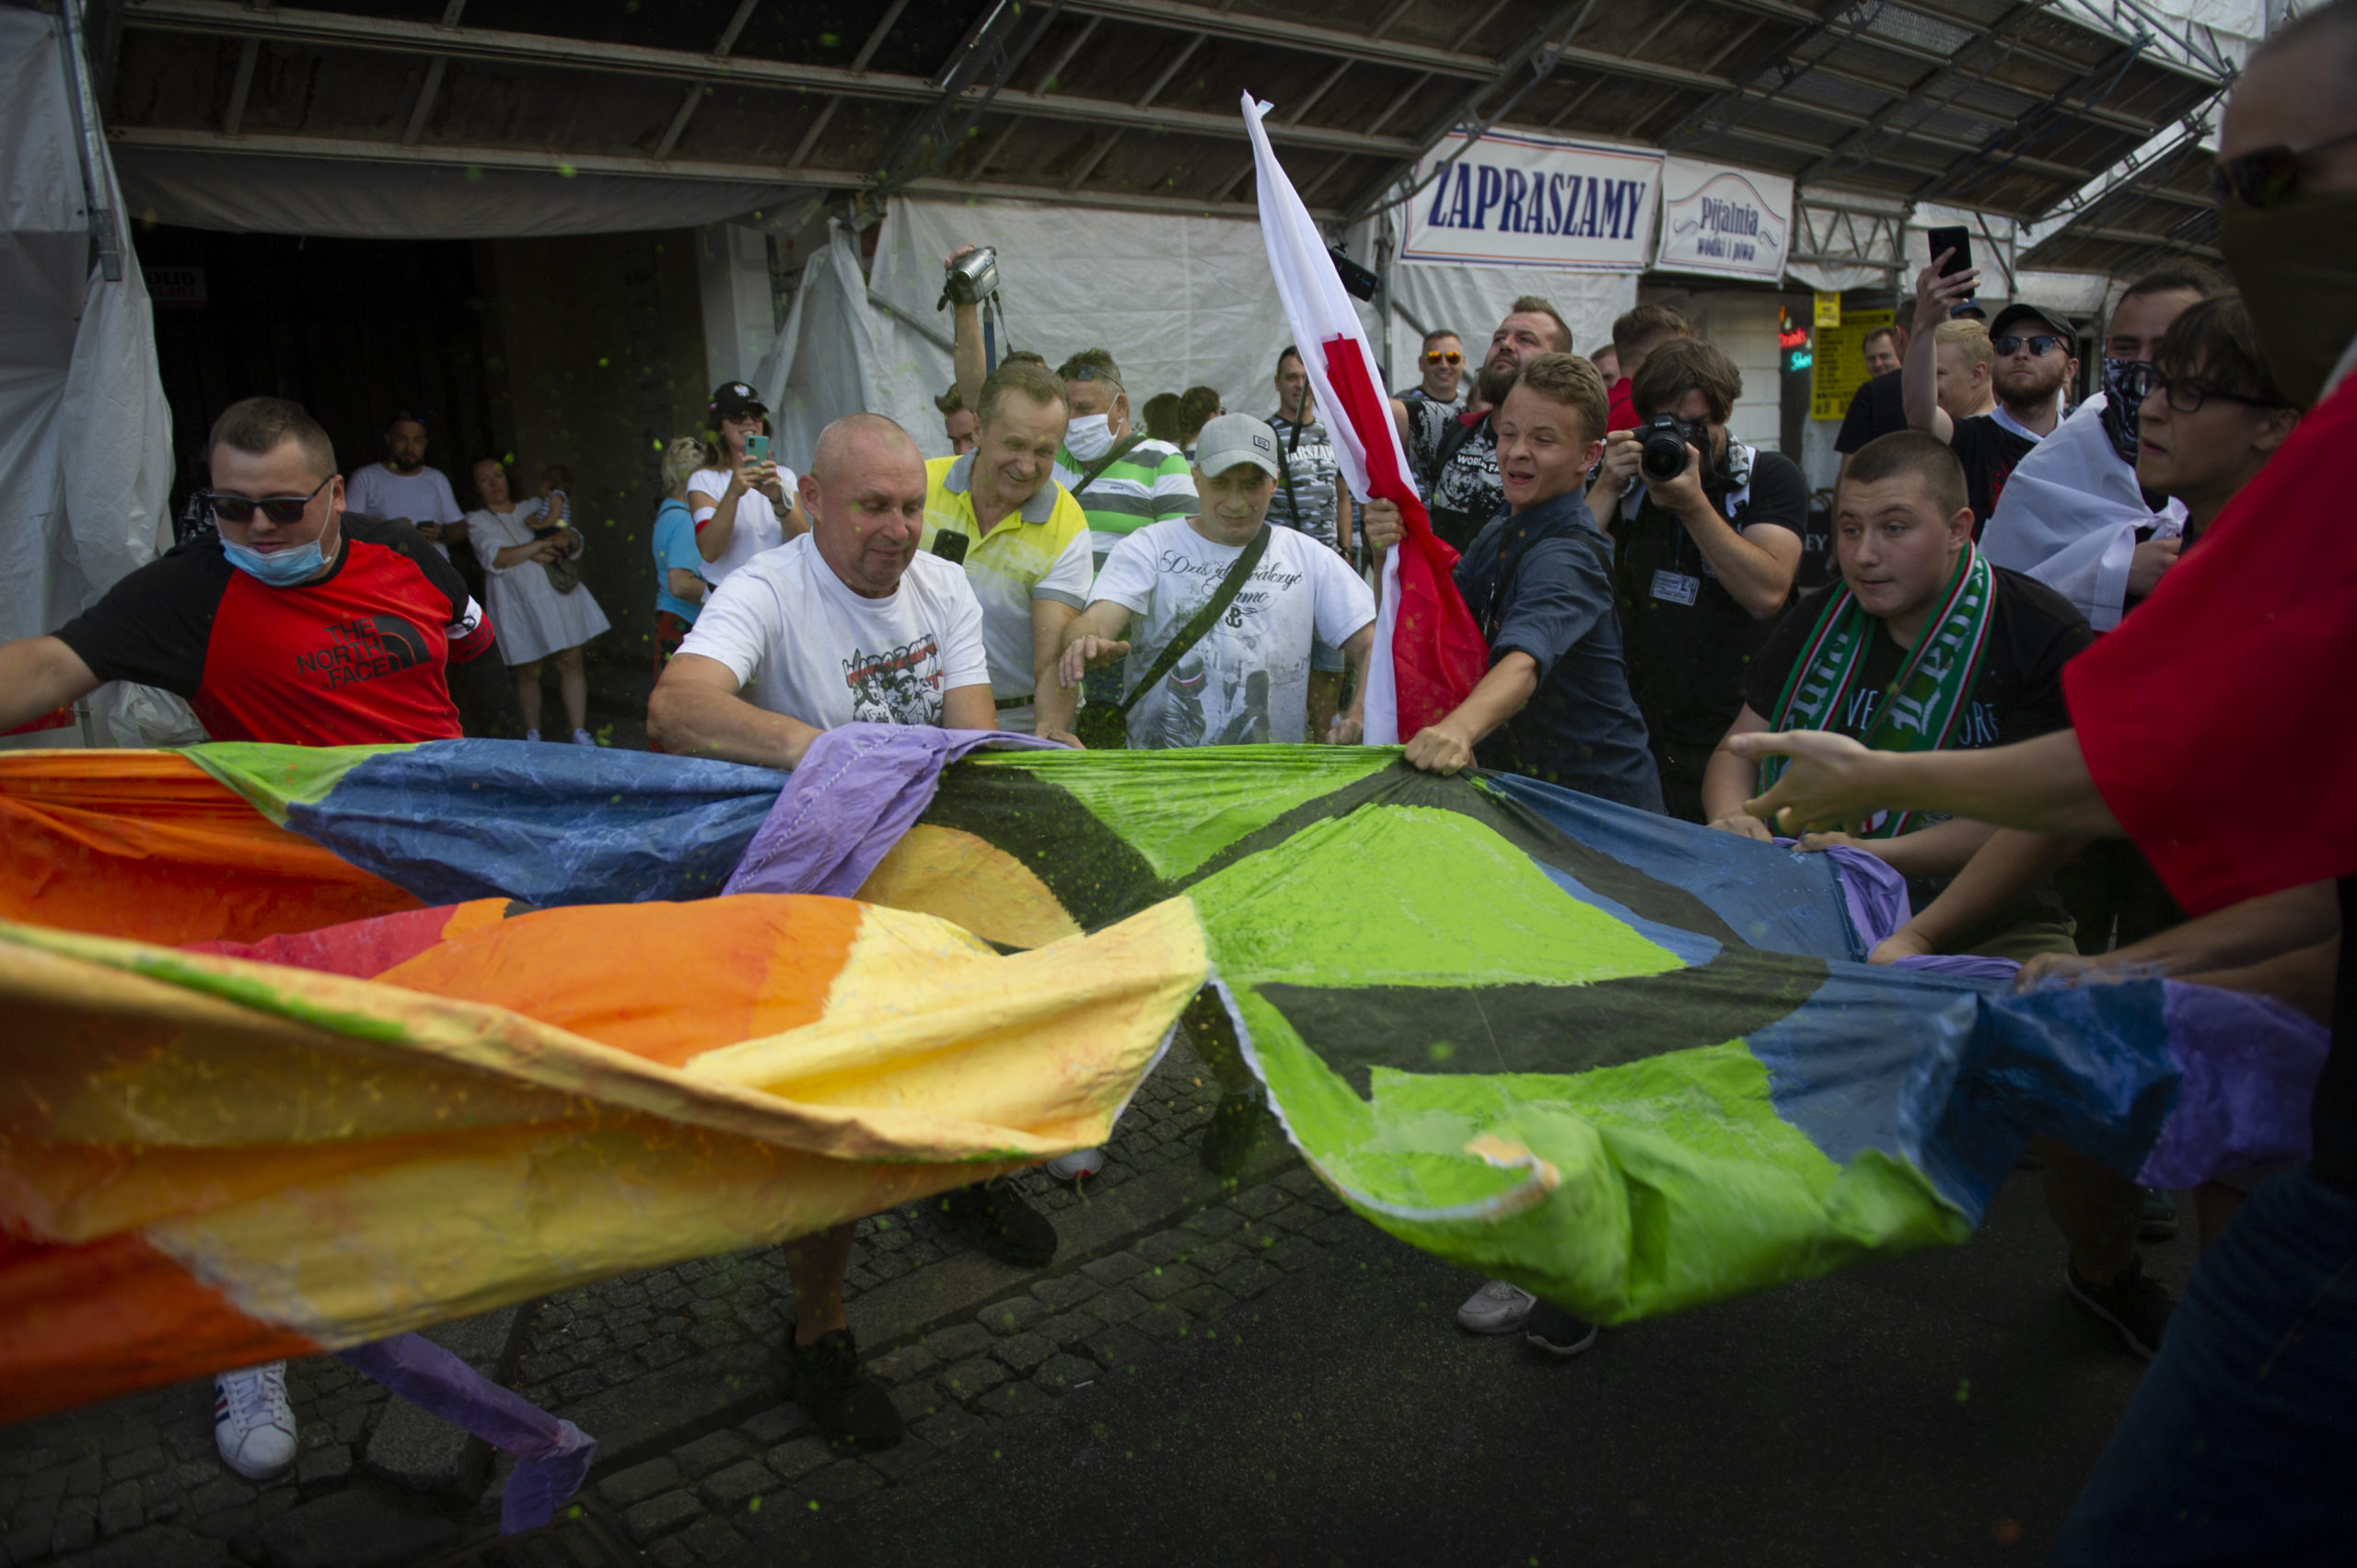 Demonstrators tear a rainbow flag apart during the 76th Warsaw uprising anniversary